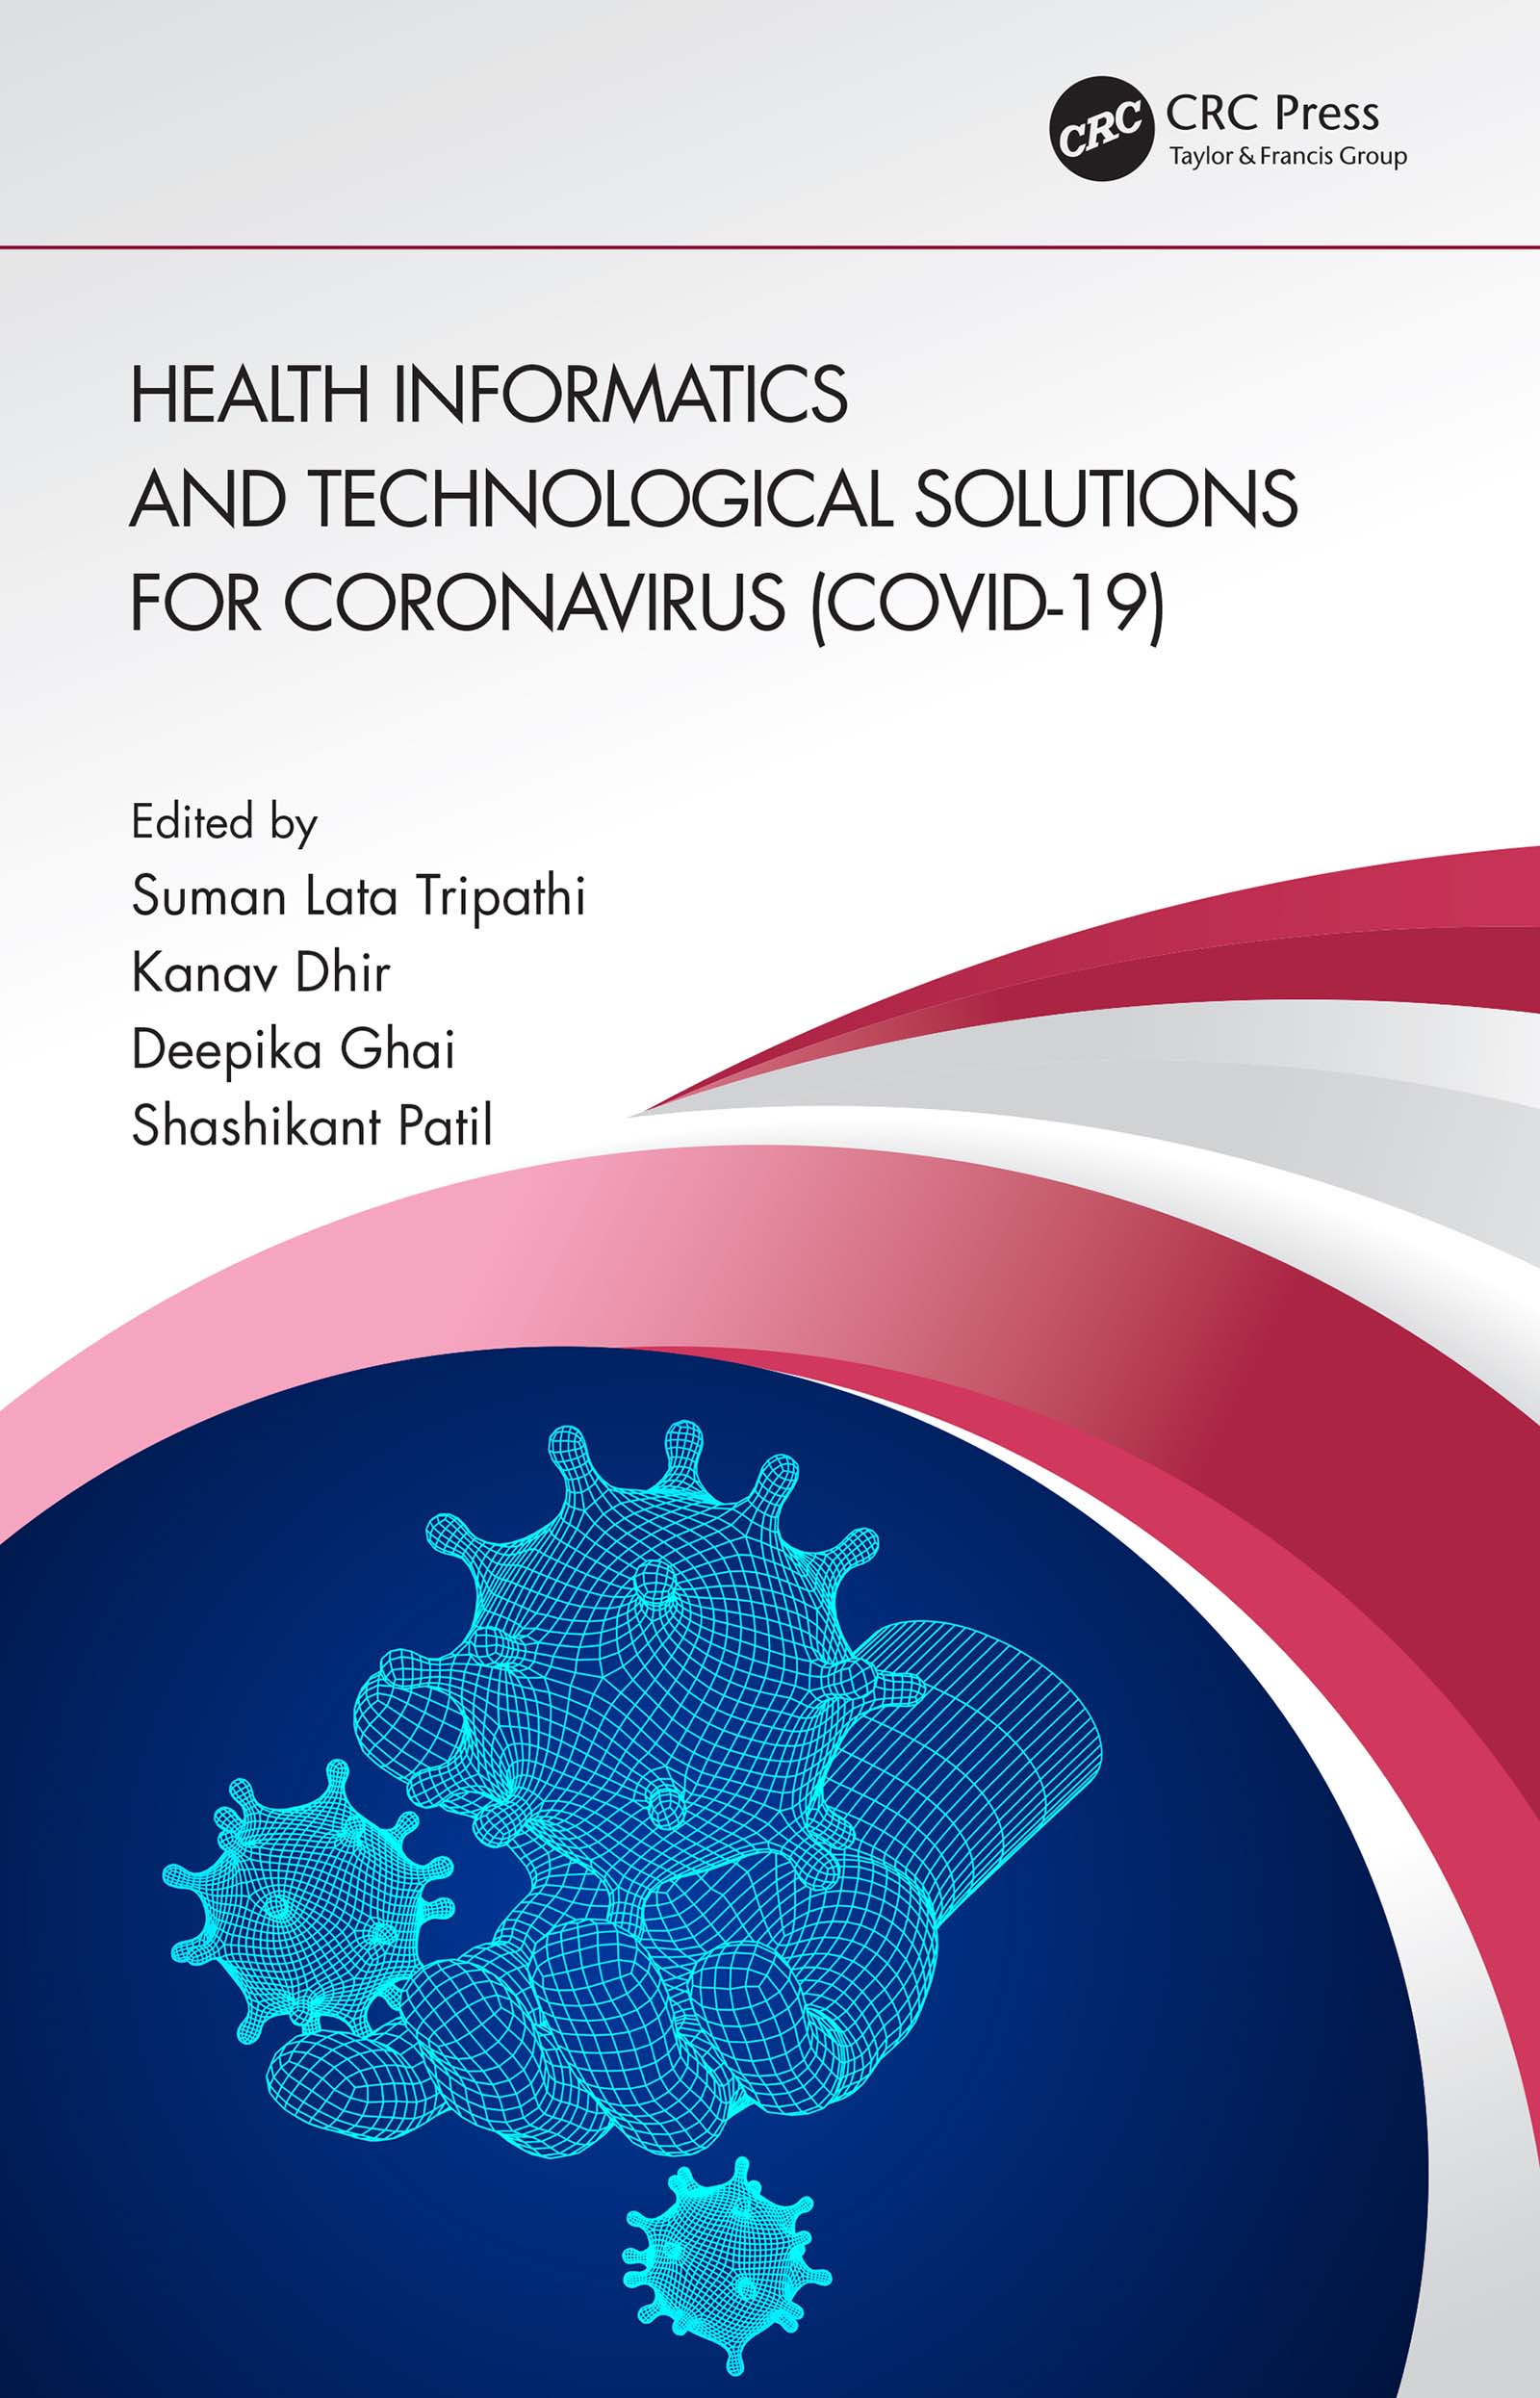 Health Informatics and Technological Solutions for Coronavirus (COVID-19)